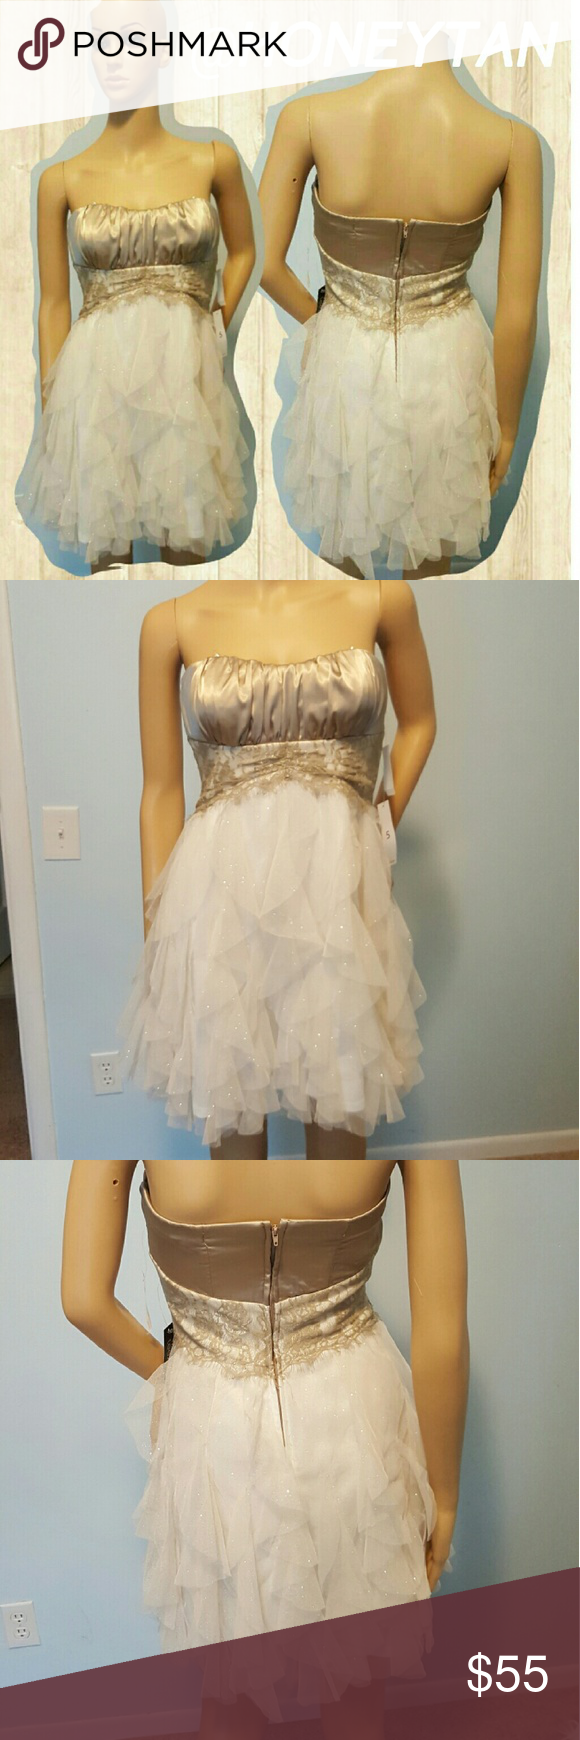 Taupe Pearl Cream Gold Glitter Dress Taupe Pearl Cream Gold Glitter Dress Teeze Me Dresses Prom